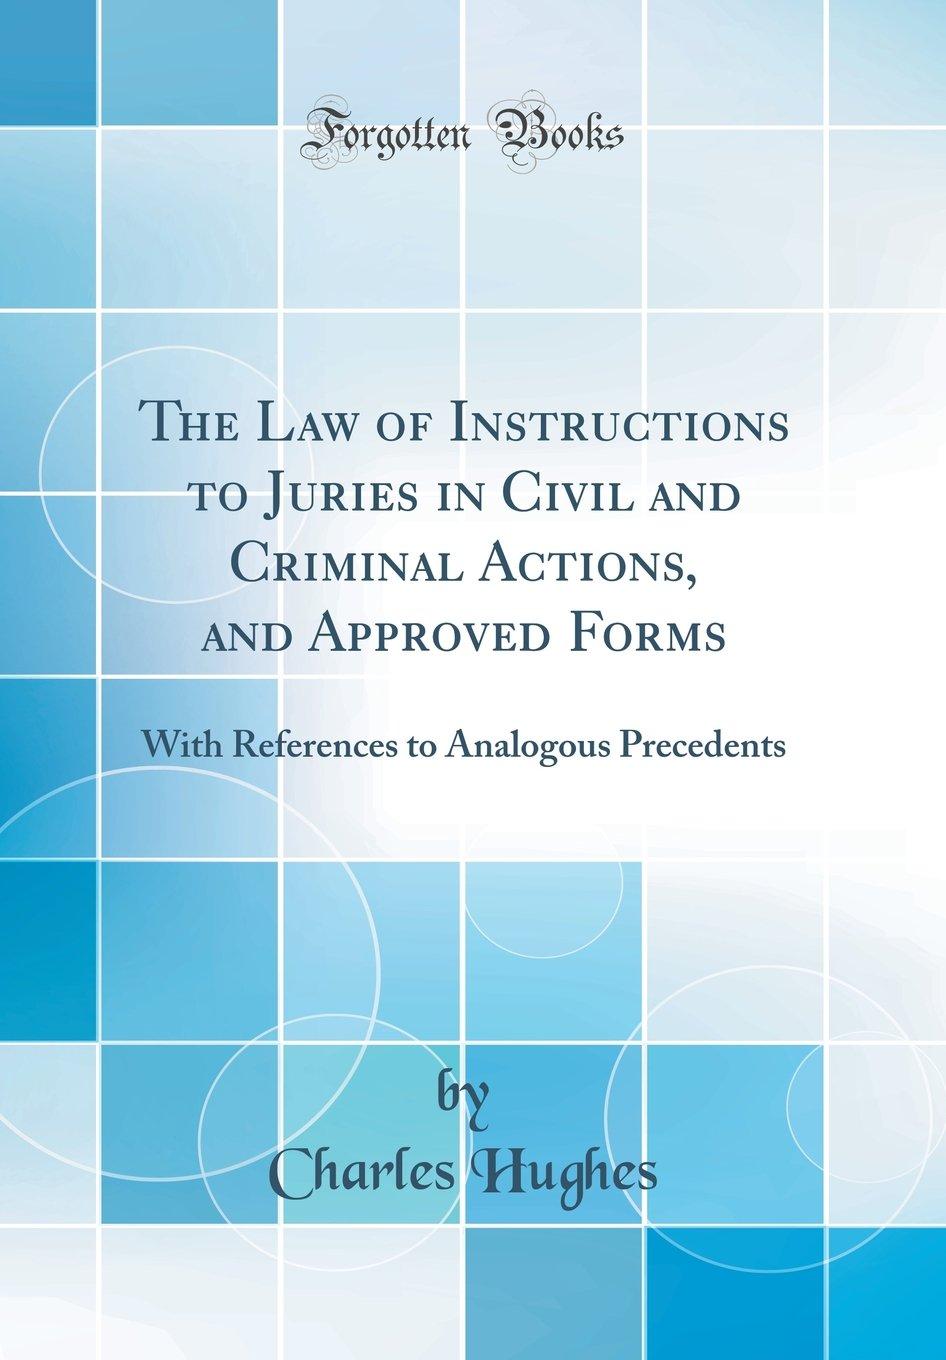 Law, Mcgraw Hill Books Free Download Pdf, Atperesources